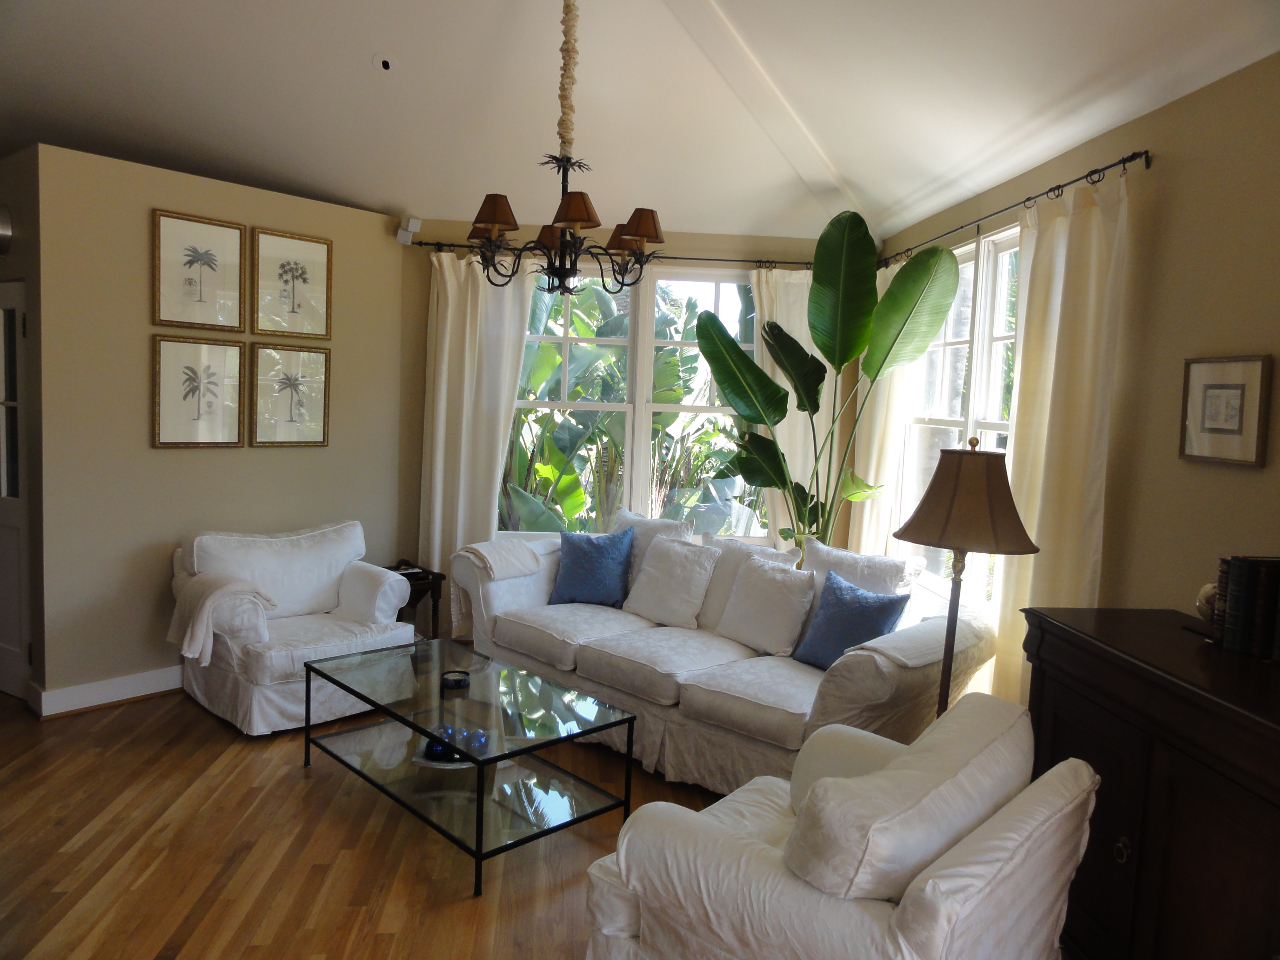 Property photo for 203 Rincon Point Rd Santa Barbara, California 93013 - 12-3616